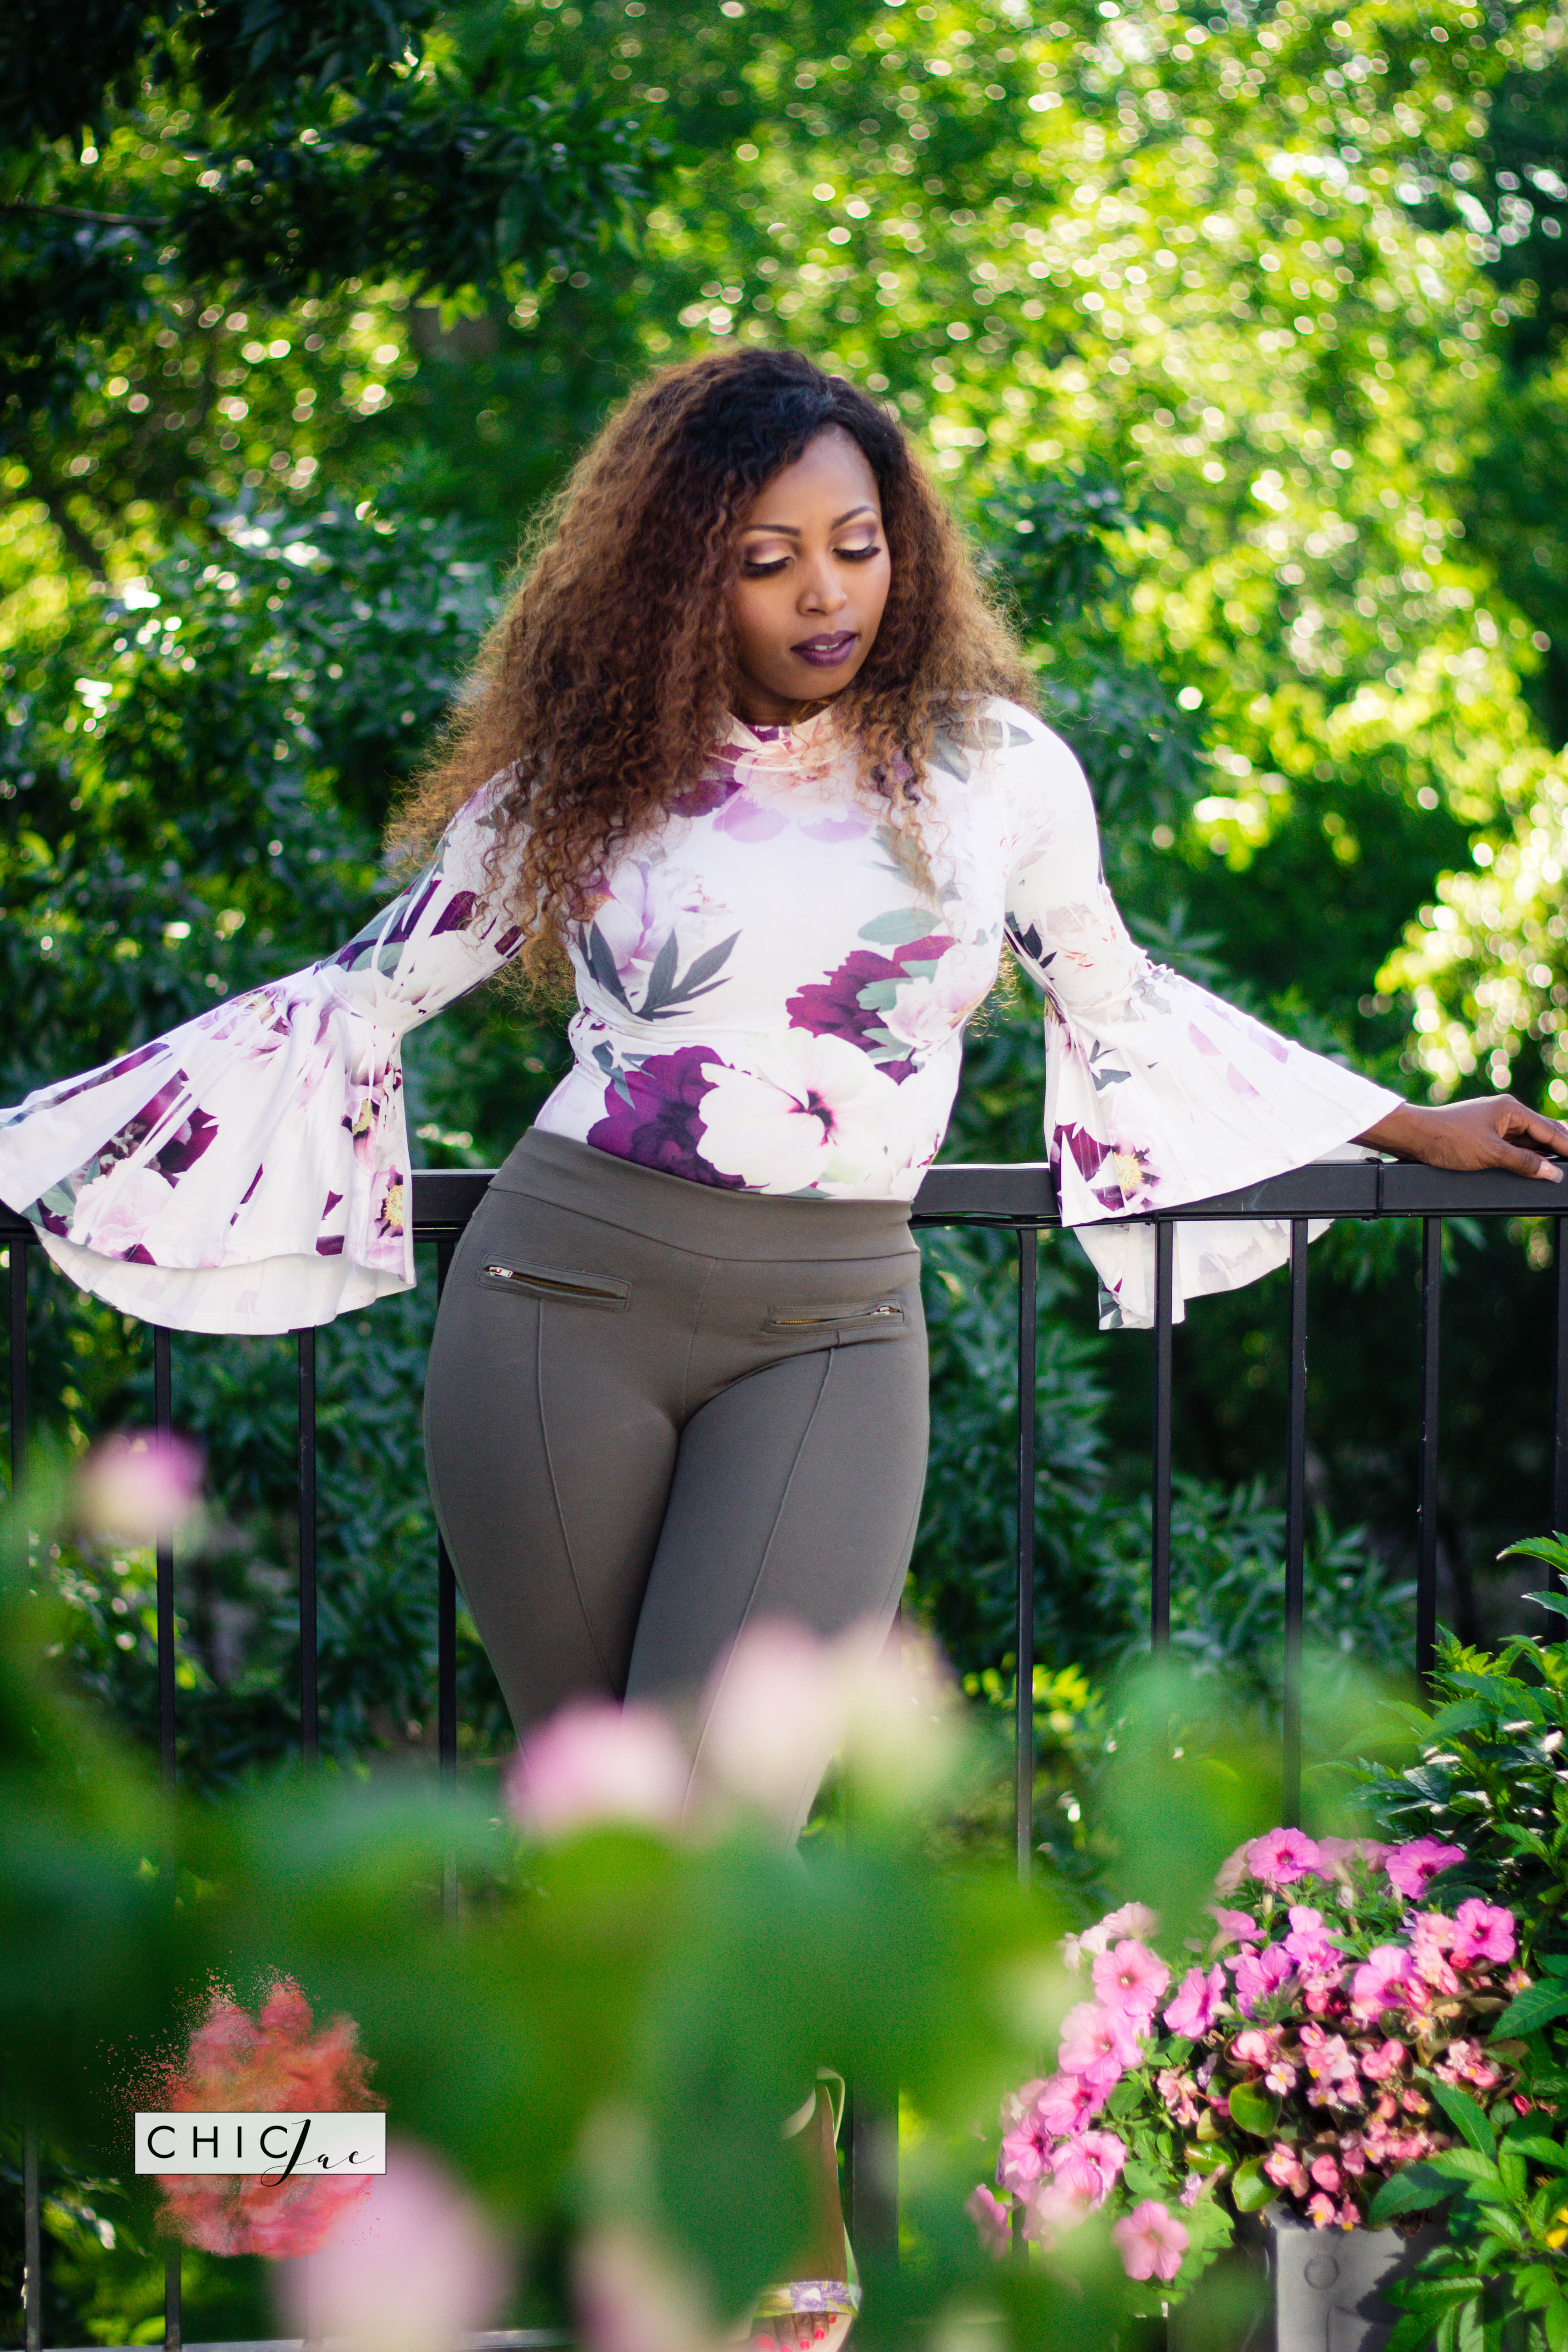 Brown Beauty in floral setting with floral outfit